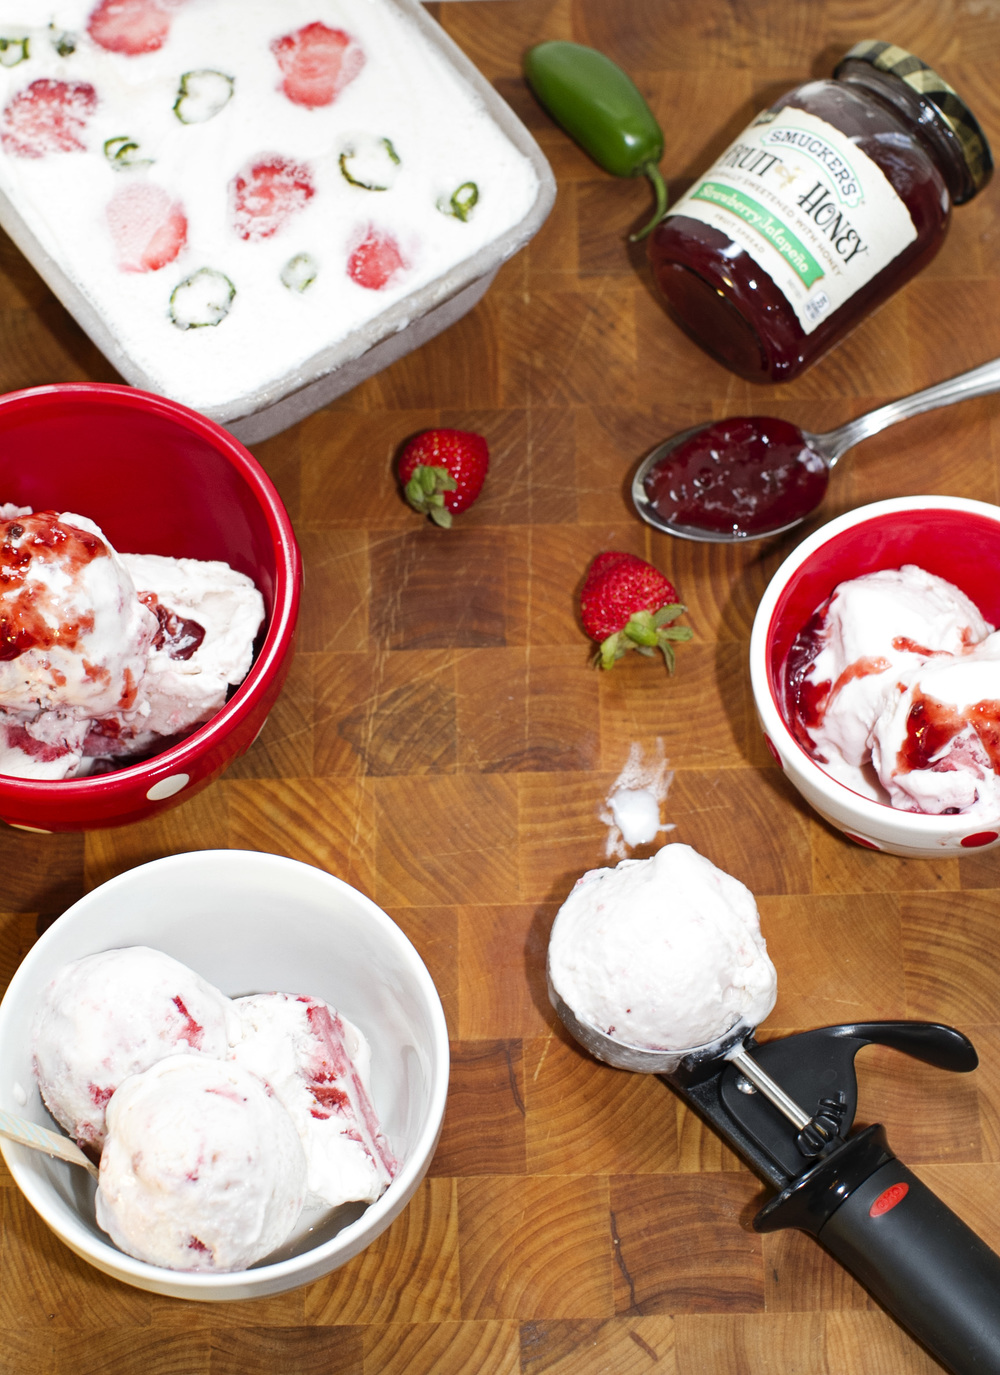 Strawberry Jalapeno No Churn Ice Cream #SpreadTheHeat